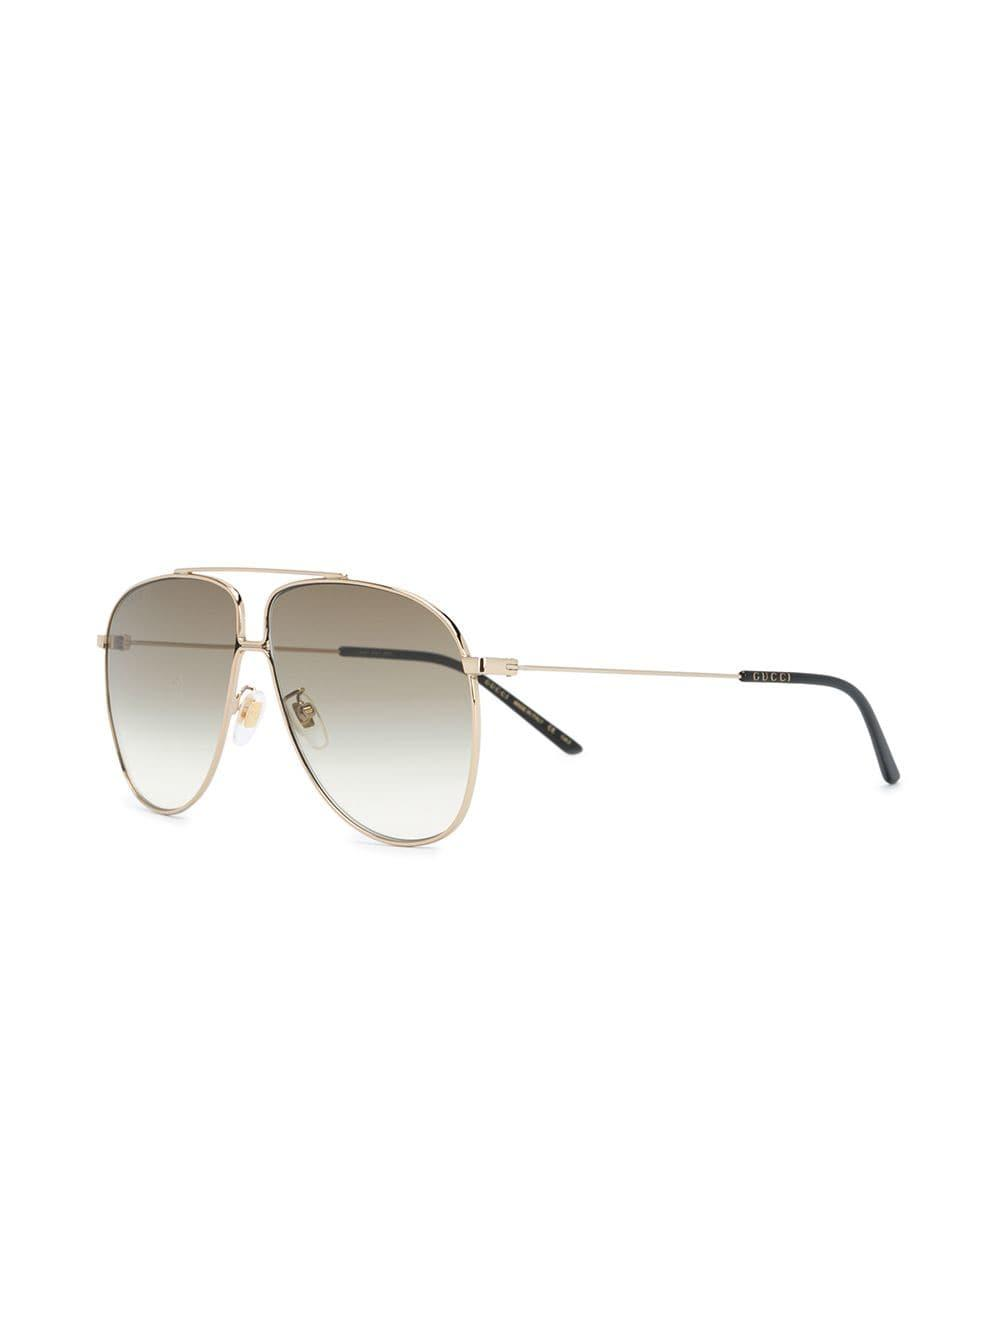 d42d3b8f796 Lyst - Gucci Aviator Sunglasses in Black for Men